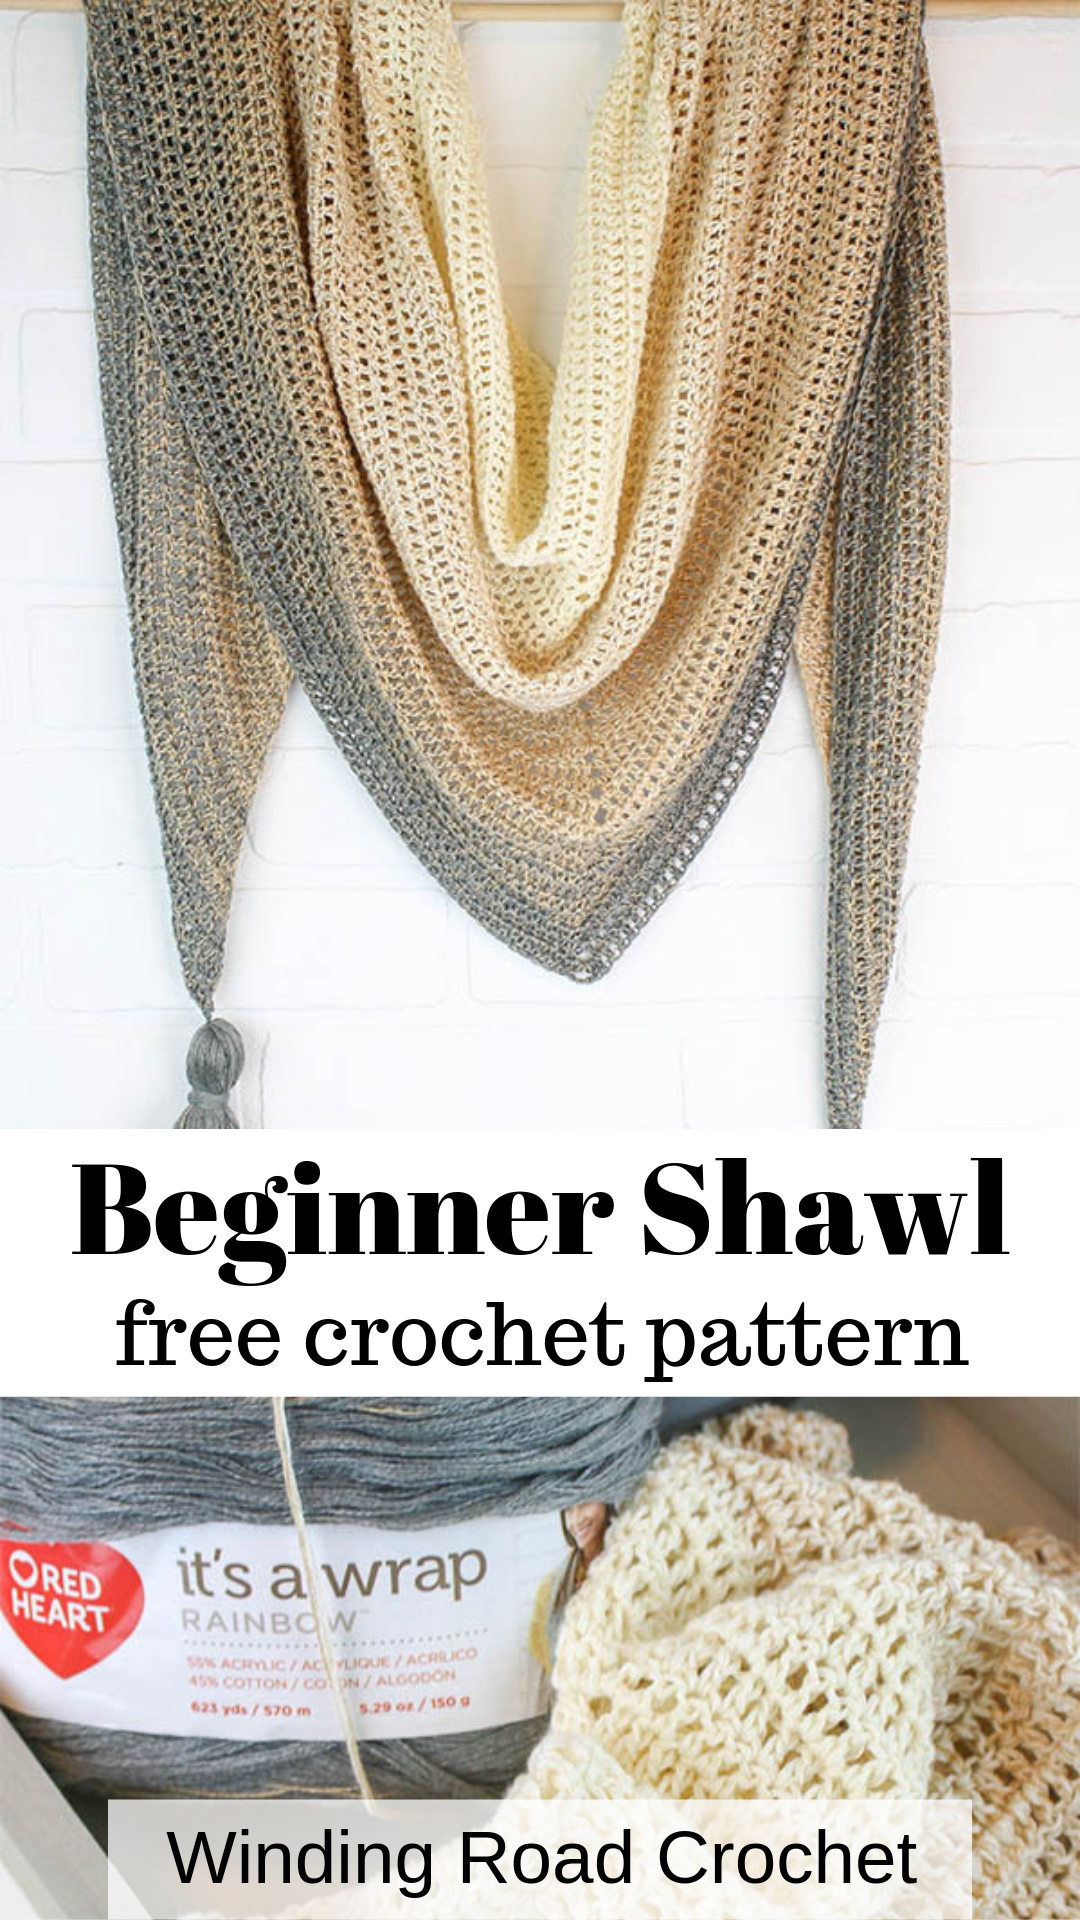 My First Triangle Shawl Free Crochet Pattern - Winding Road Crochet #shawlcrochetpattern